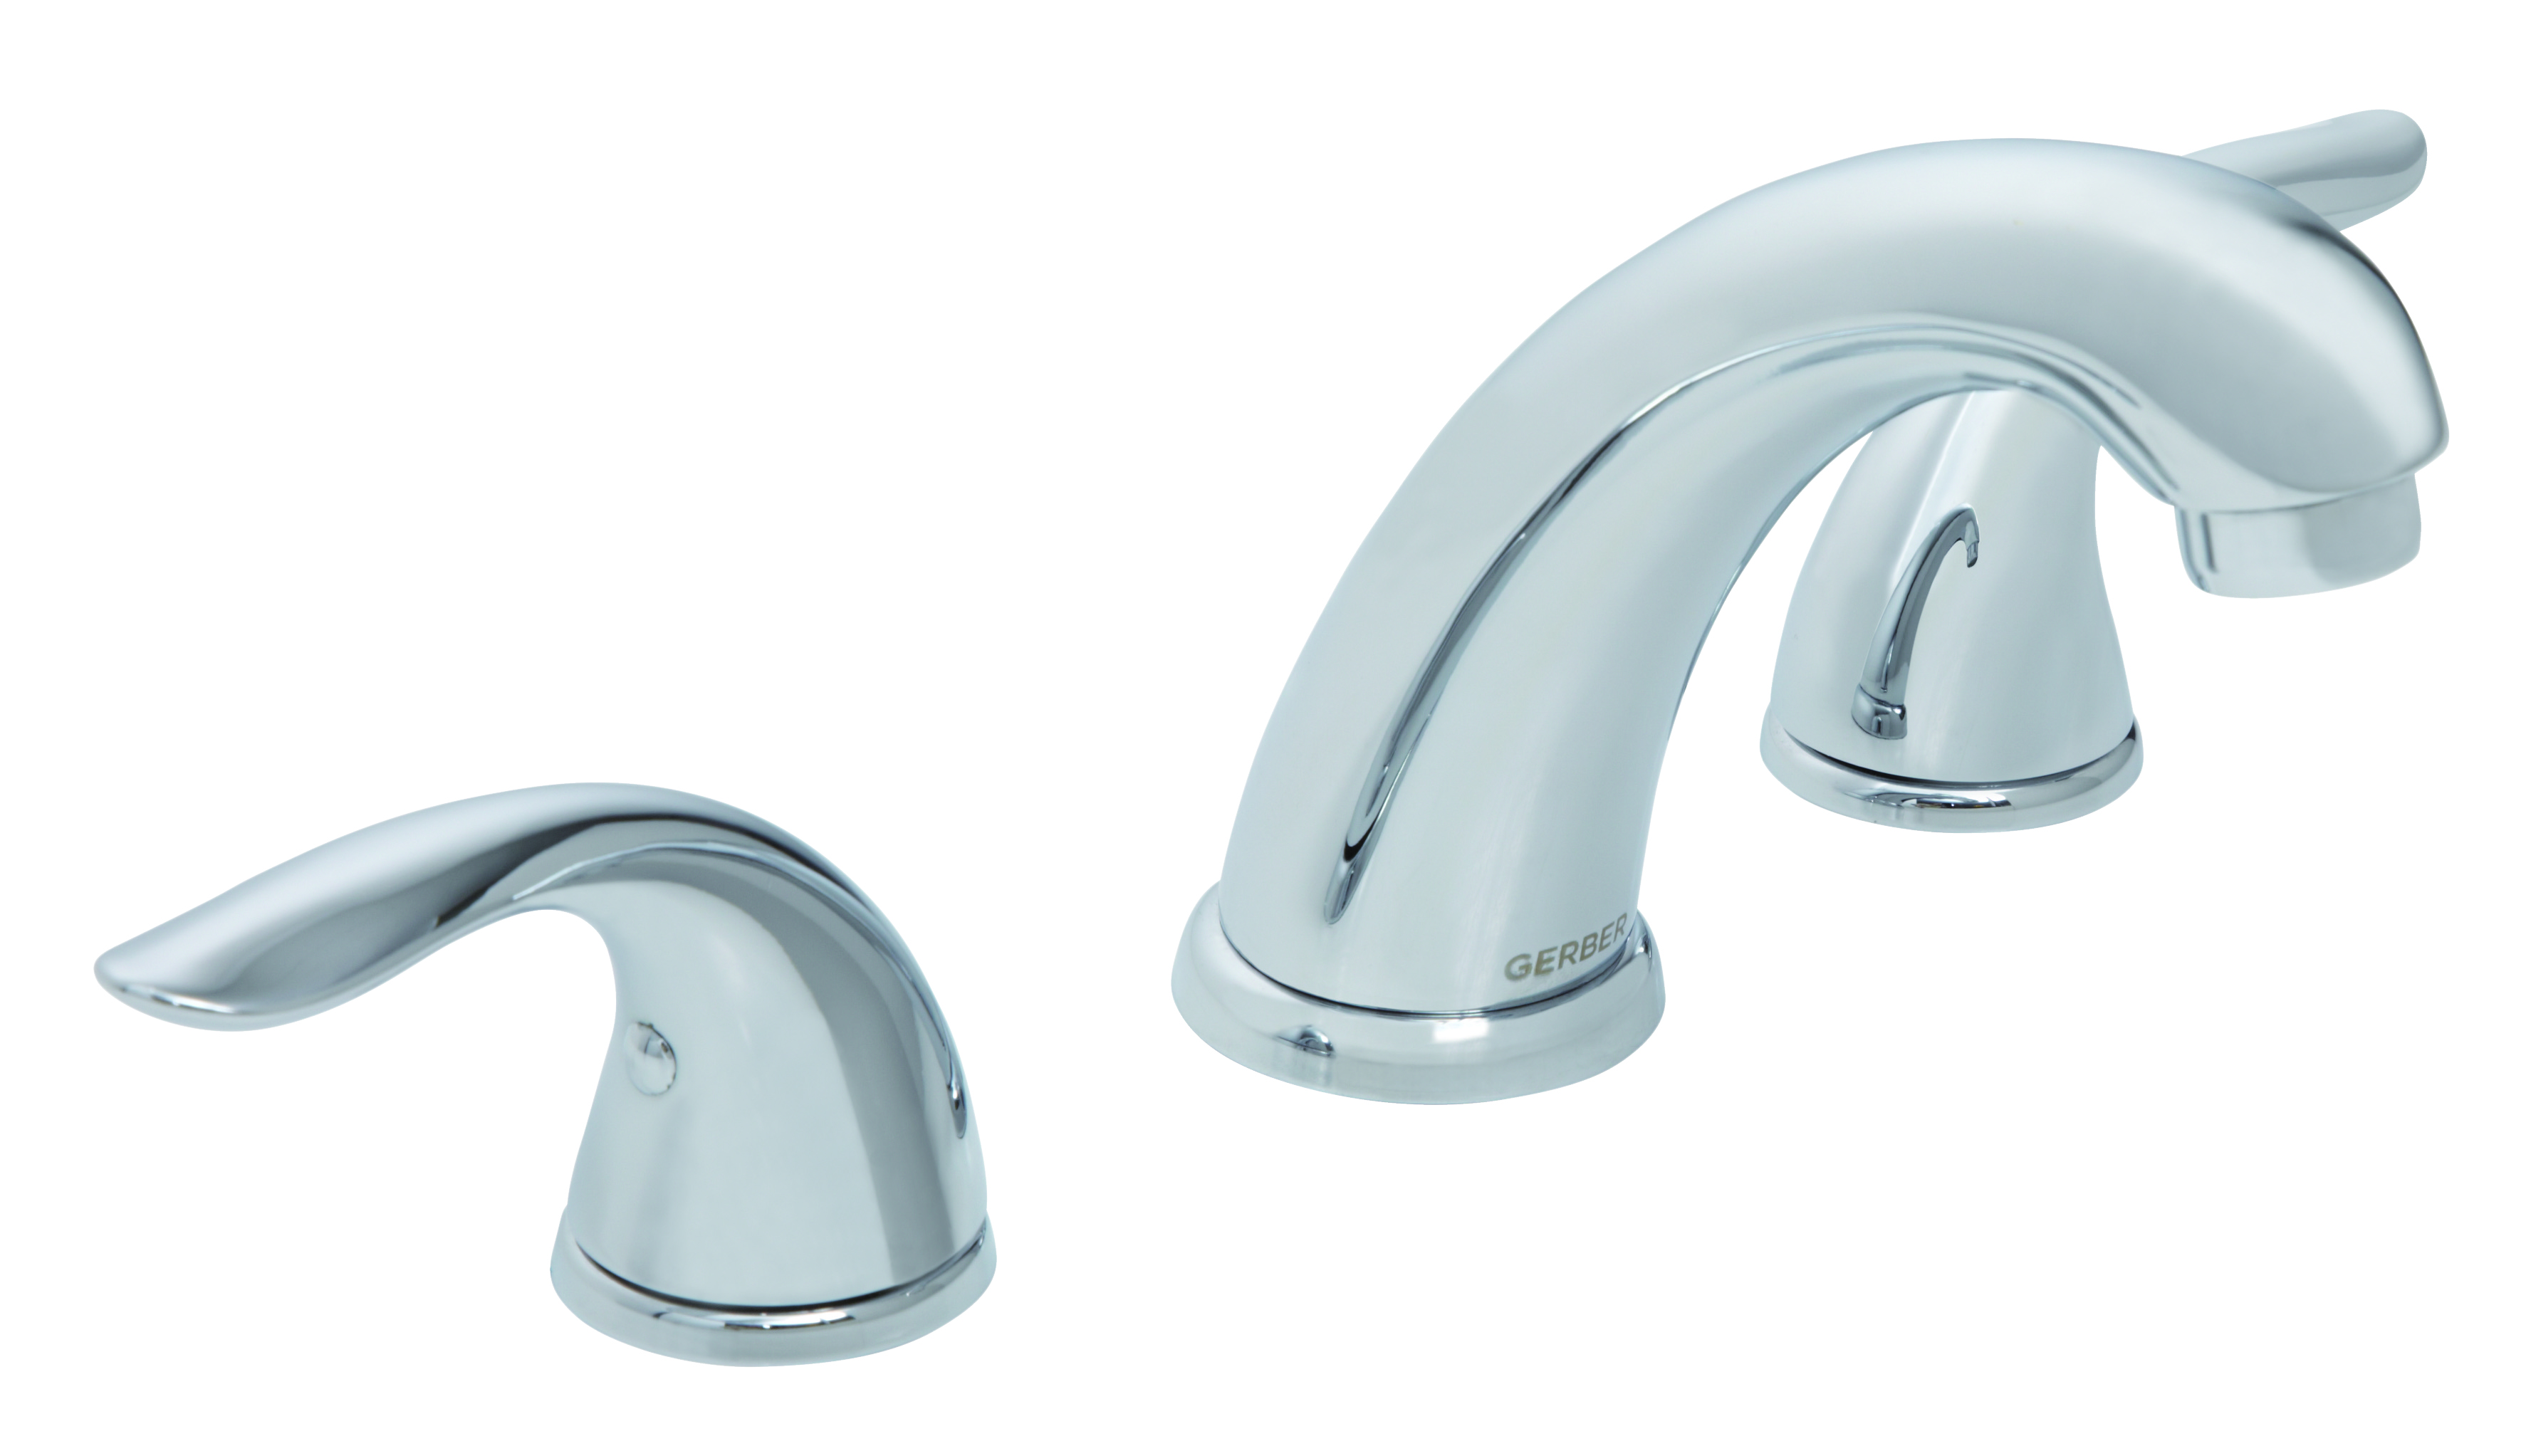 dst handle of mpu awesome double faucet leland great com photos bathroom delta htsrec widespread